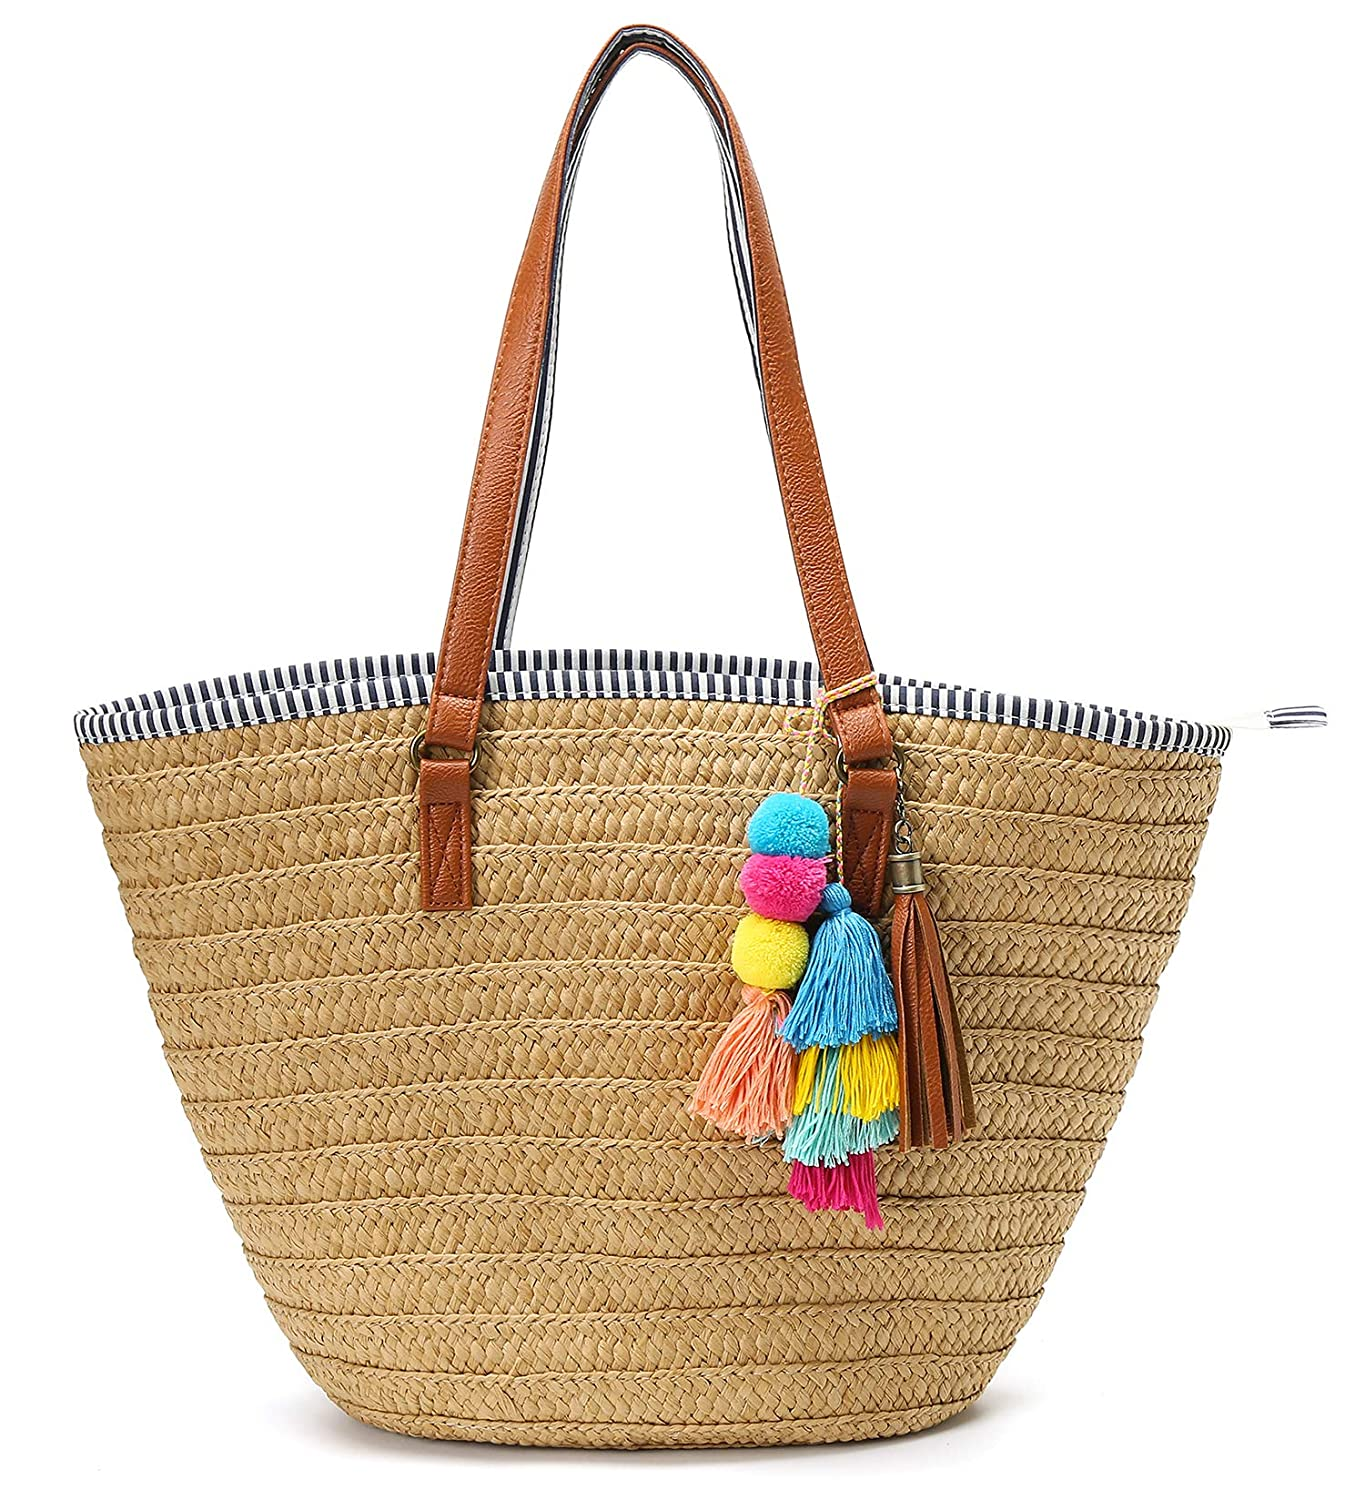 Epsion Straw Beach Bags Tote Tassels Bag Hobo Summer Handwoven Shoulder Bags Purse With Pom Poms